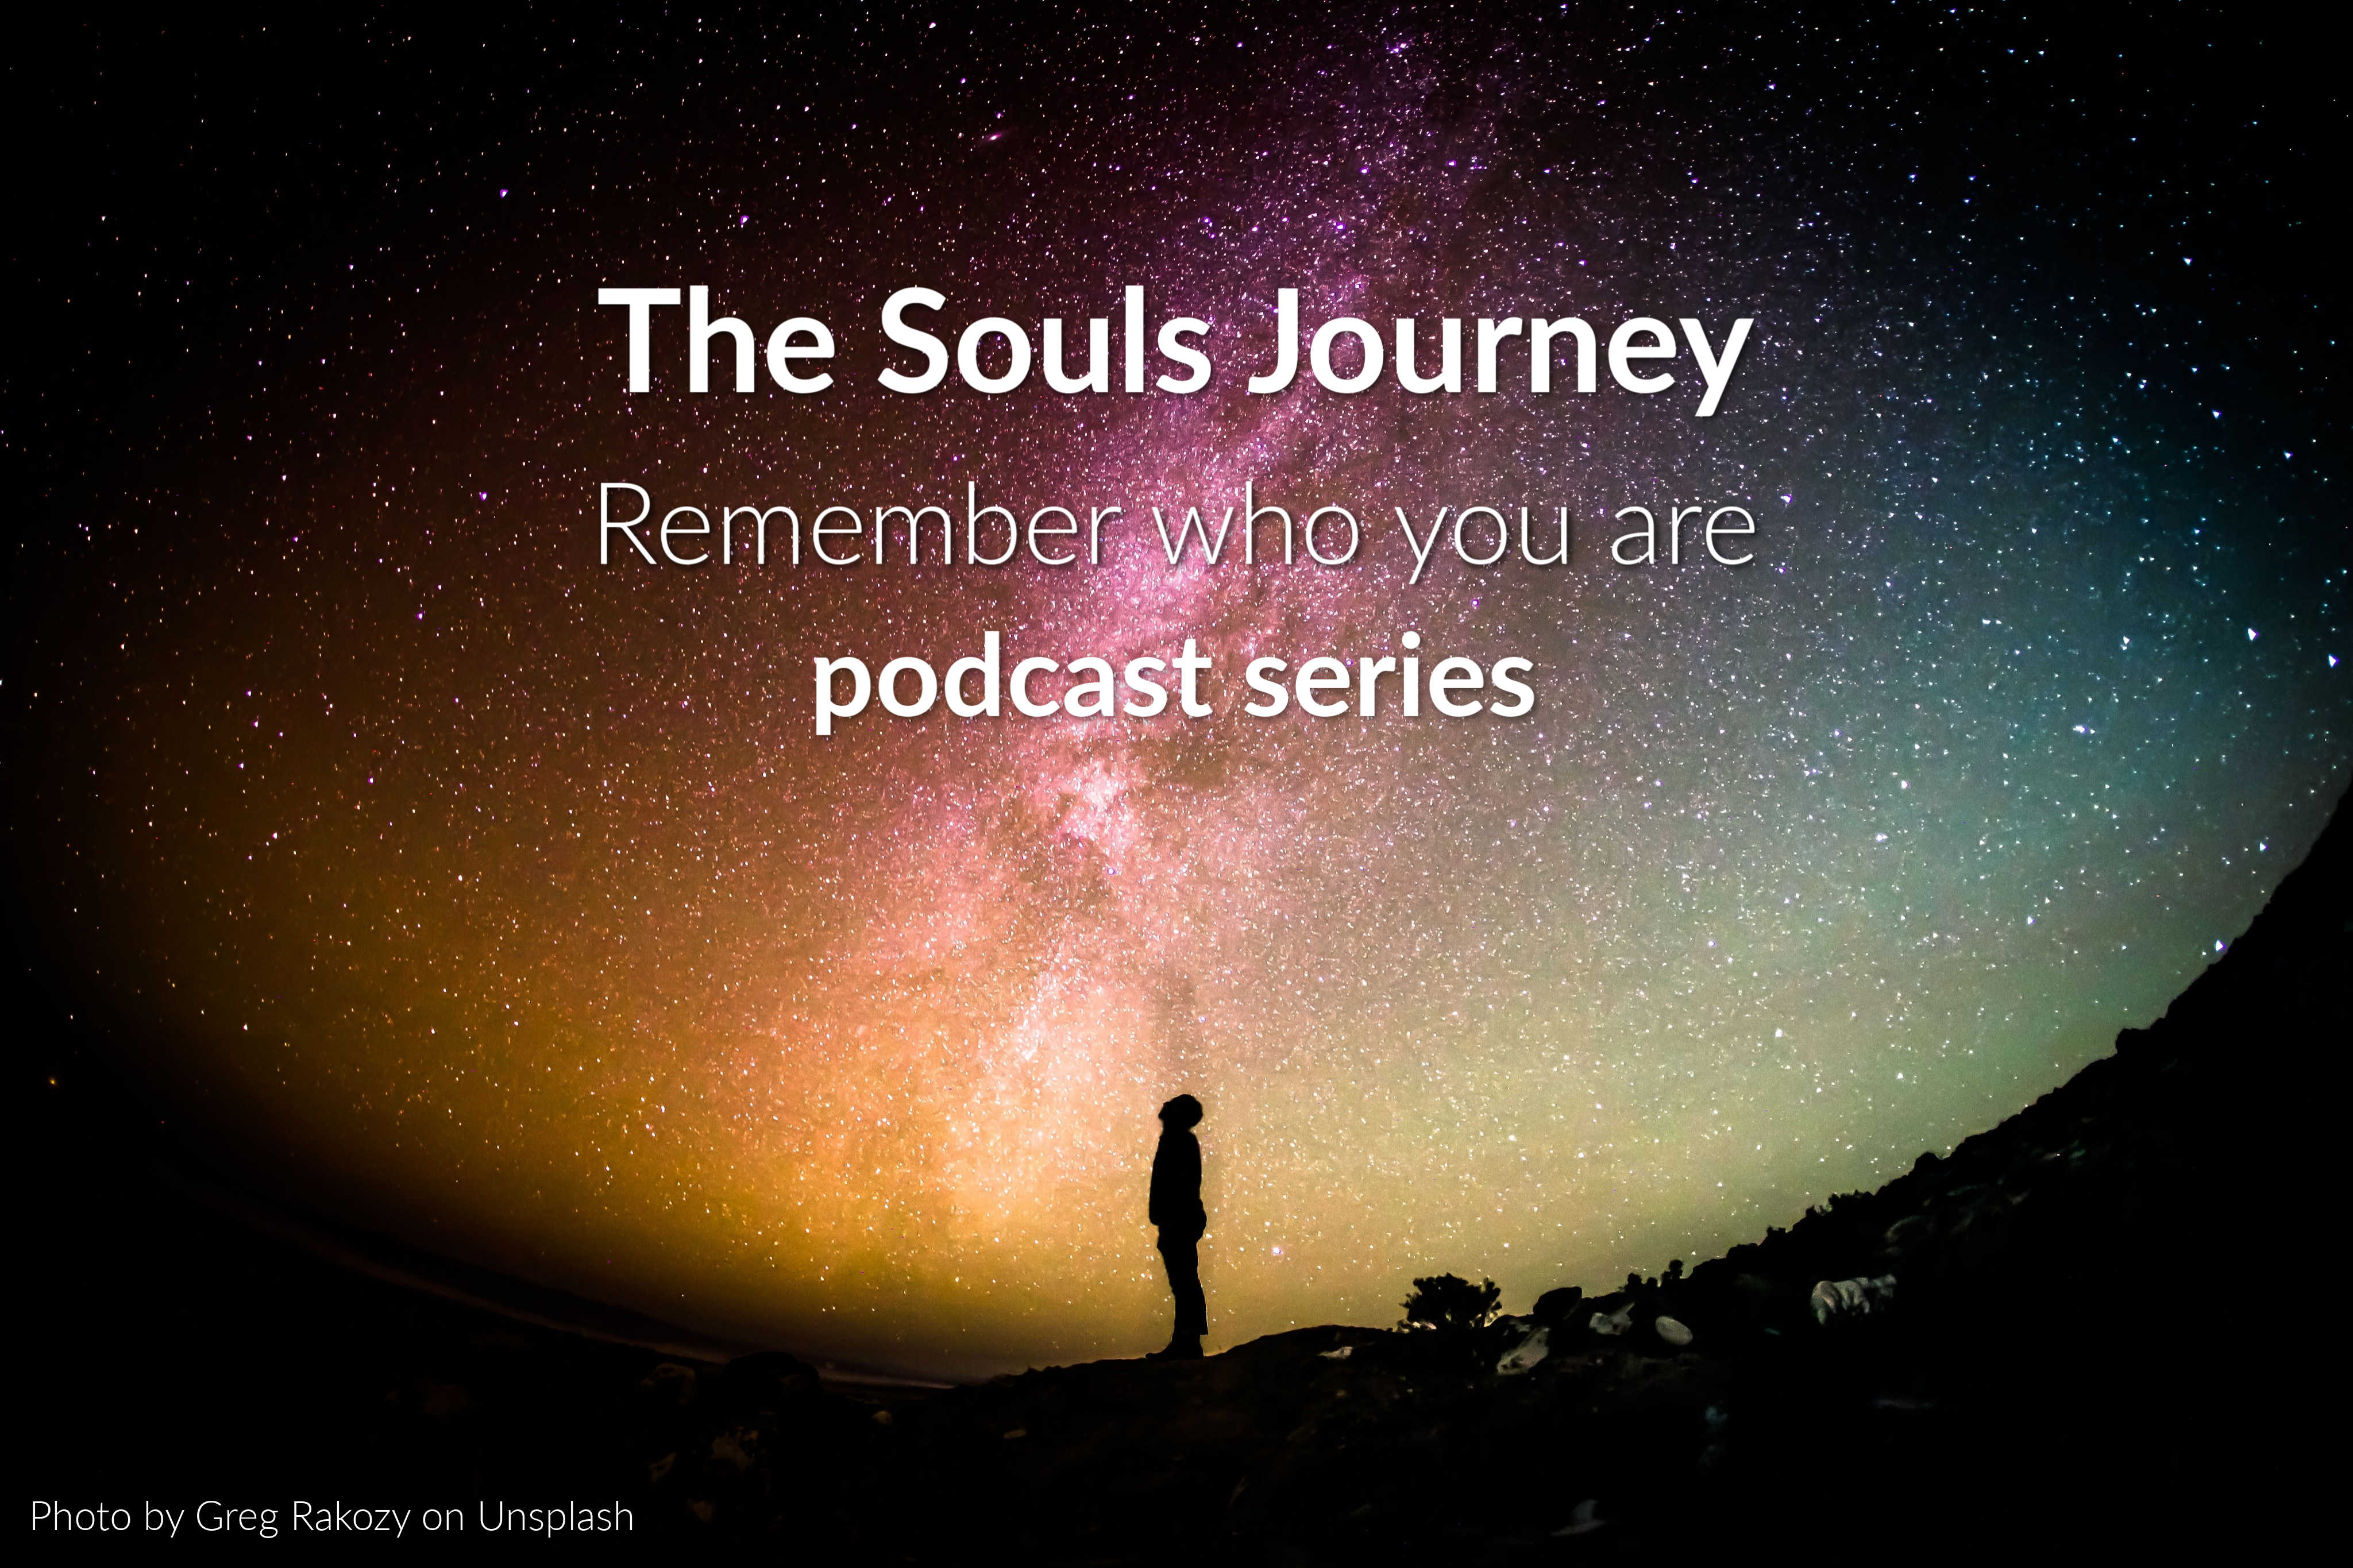 Souls Journey Podcast Series Episode 9 - Our Souls Journey Is An Adventure Of Epic Proportions